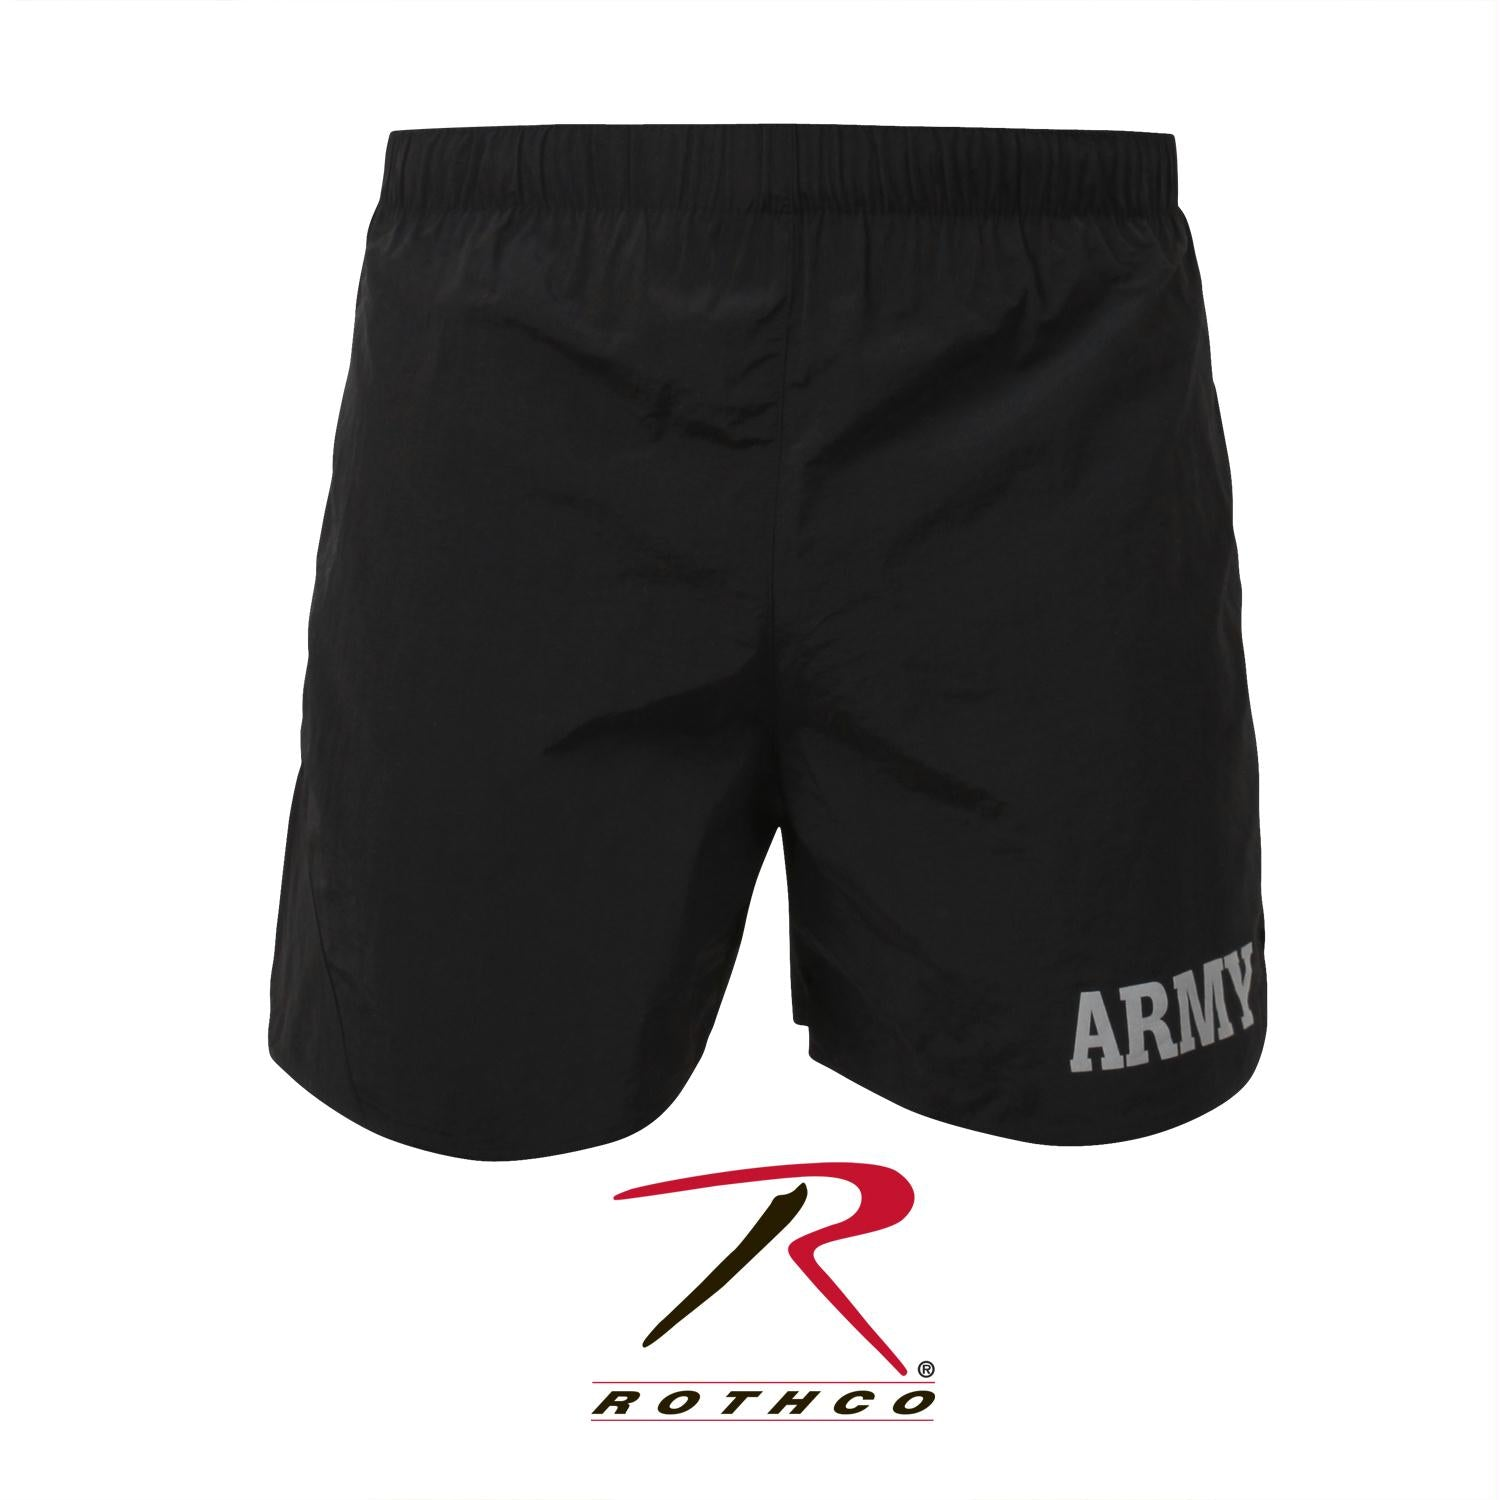 Rothco Physical Training  Shorts - Army / L